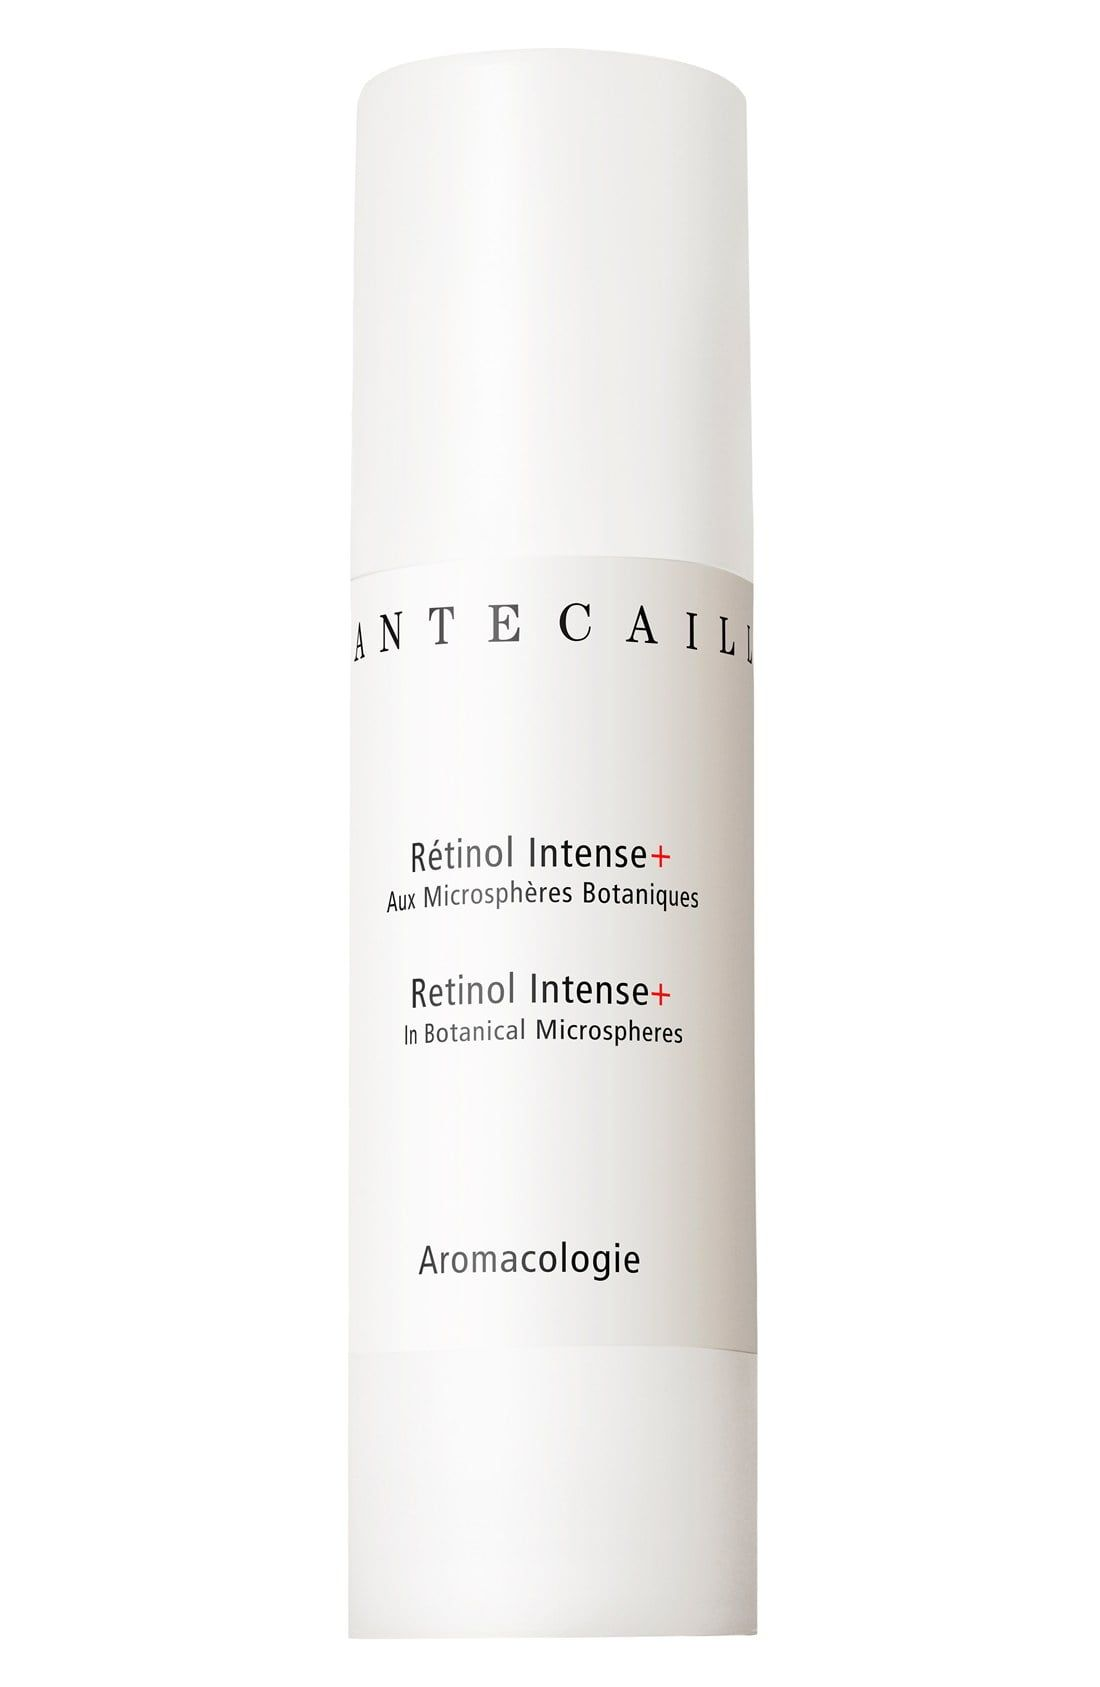 """Best for Stubborn Marks Retinol Intense+ Chantecaille nordstrom.com $140.00 SHOP NOW Don't let the word """"intense"""" listed on the front scare you away. While Chantecaille's serum is formulated with a good amount of retinol, it also comes packed with vitamin C and green decaffeinated coffee to tackle hyperpigmentation head-on."""